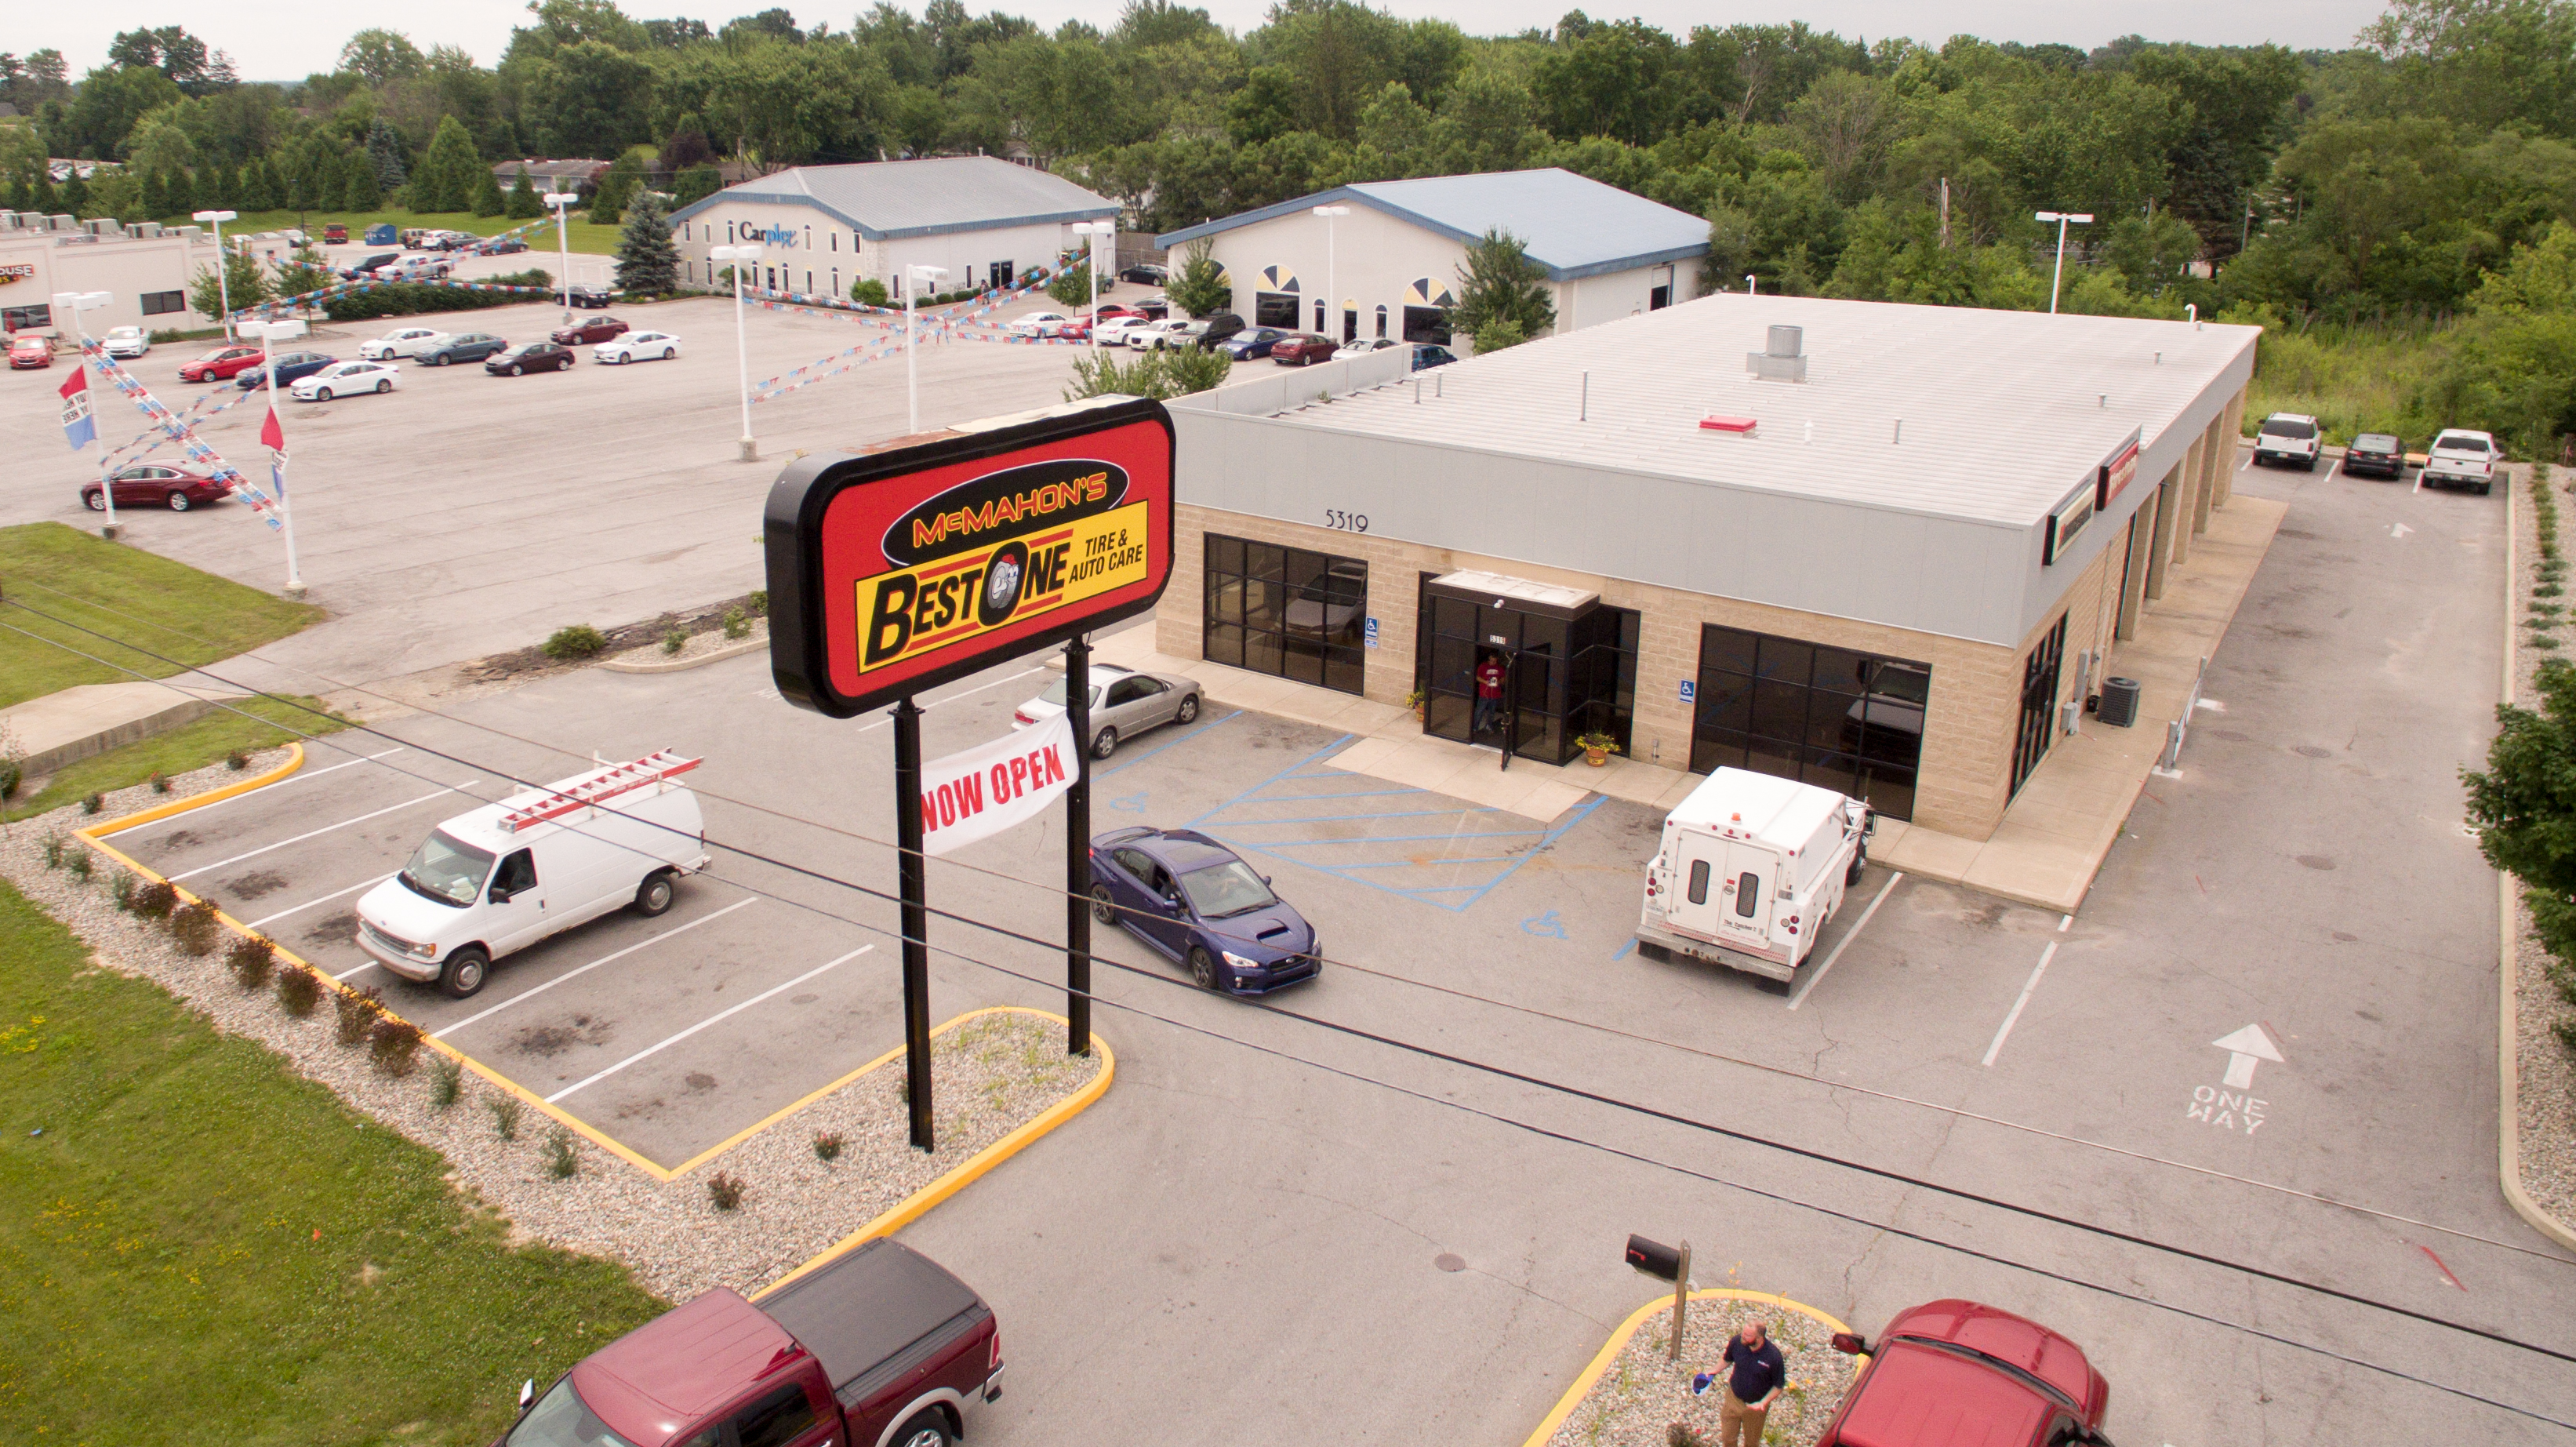 McMahons Best-One Tire & Auto Care